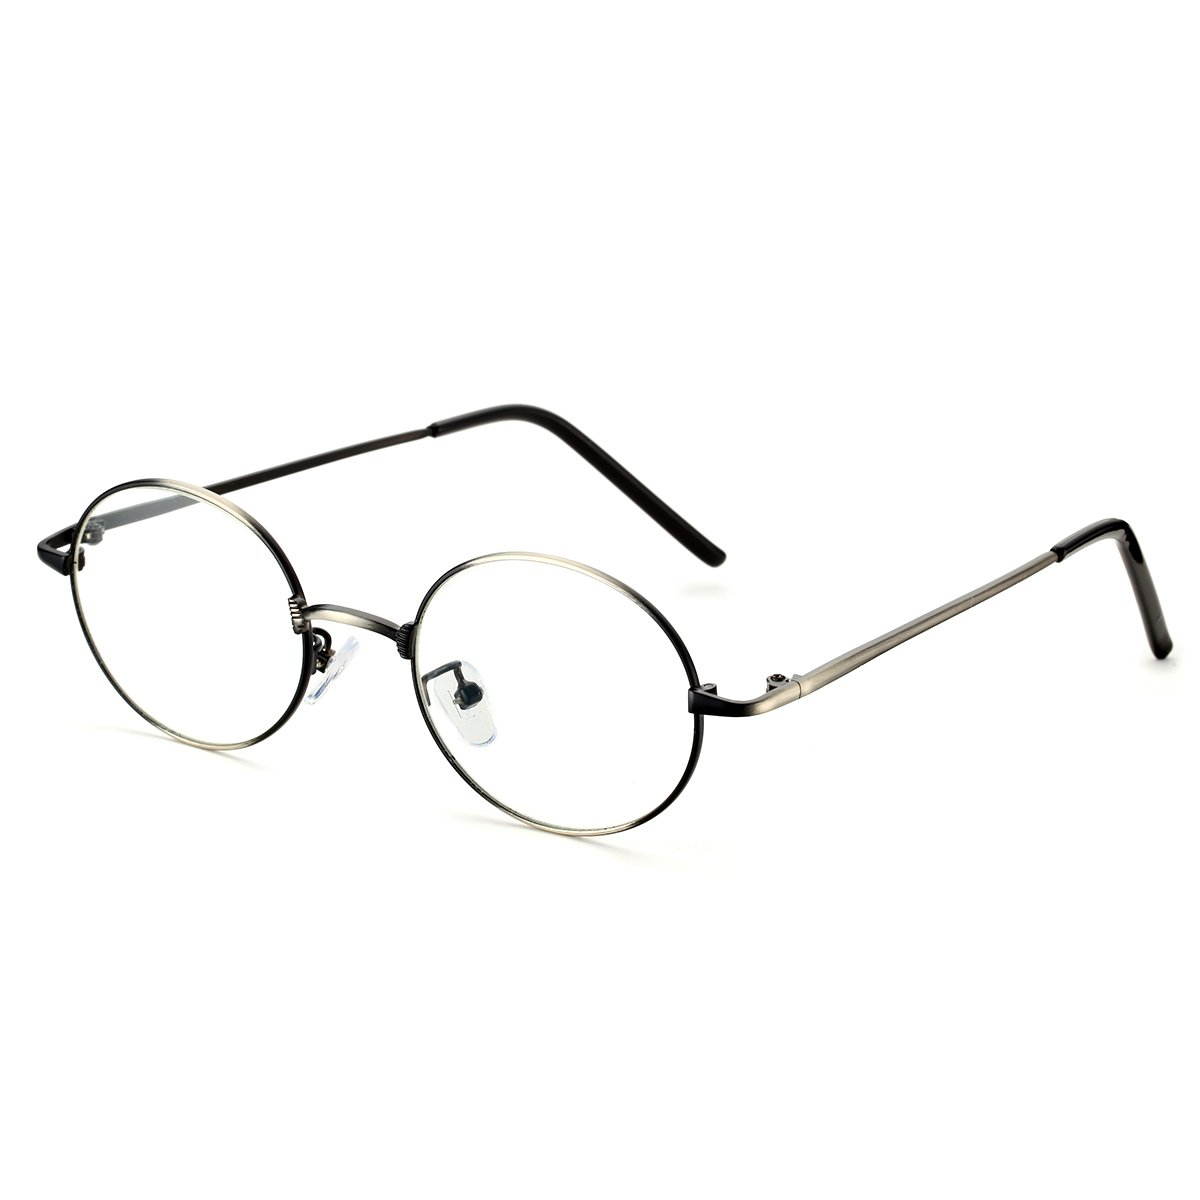 e14cdcf7a88 Amazon.com  PenSee Optical Metal Round Oval Circle Eye Glasses Eyewear  Frames  Clothing